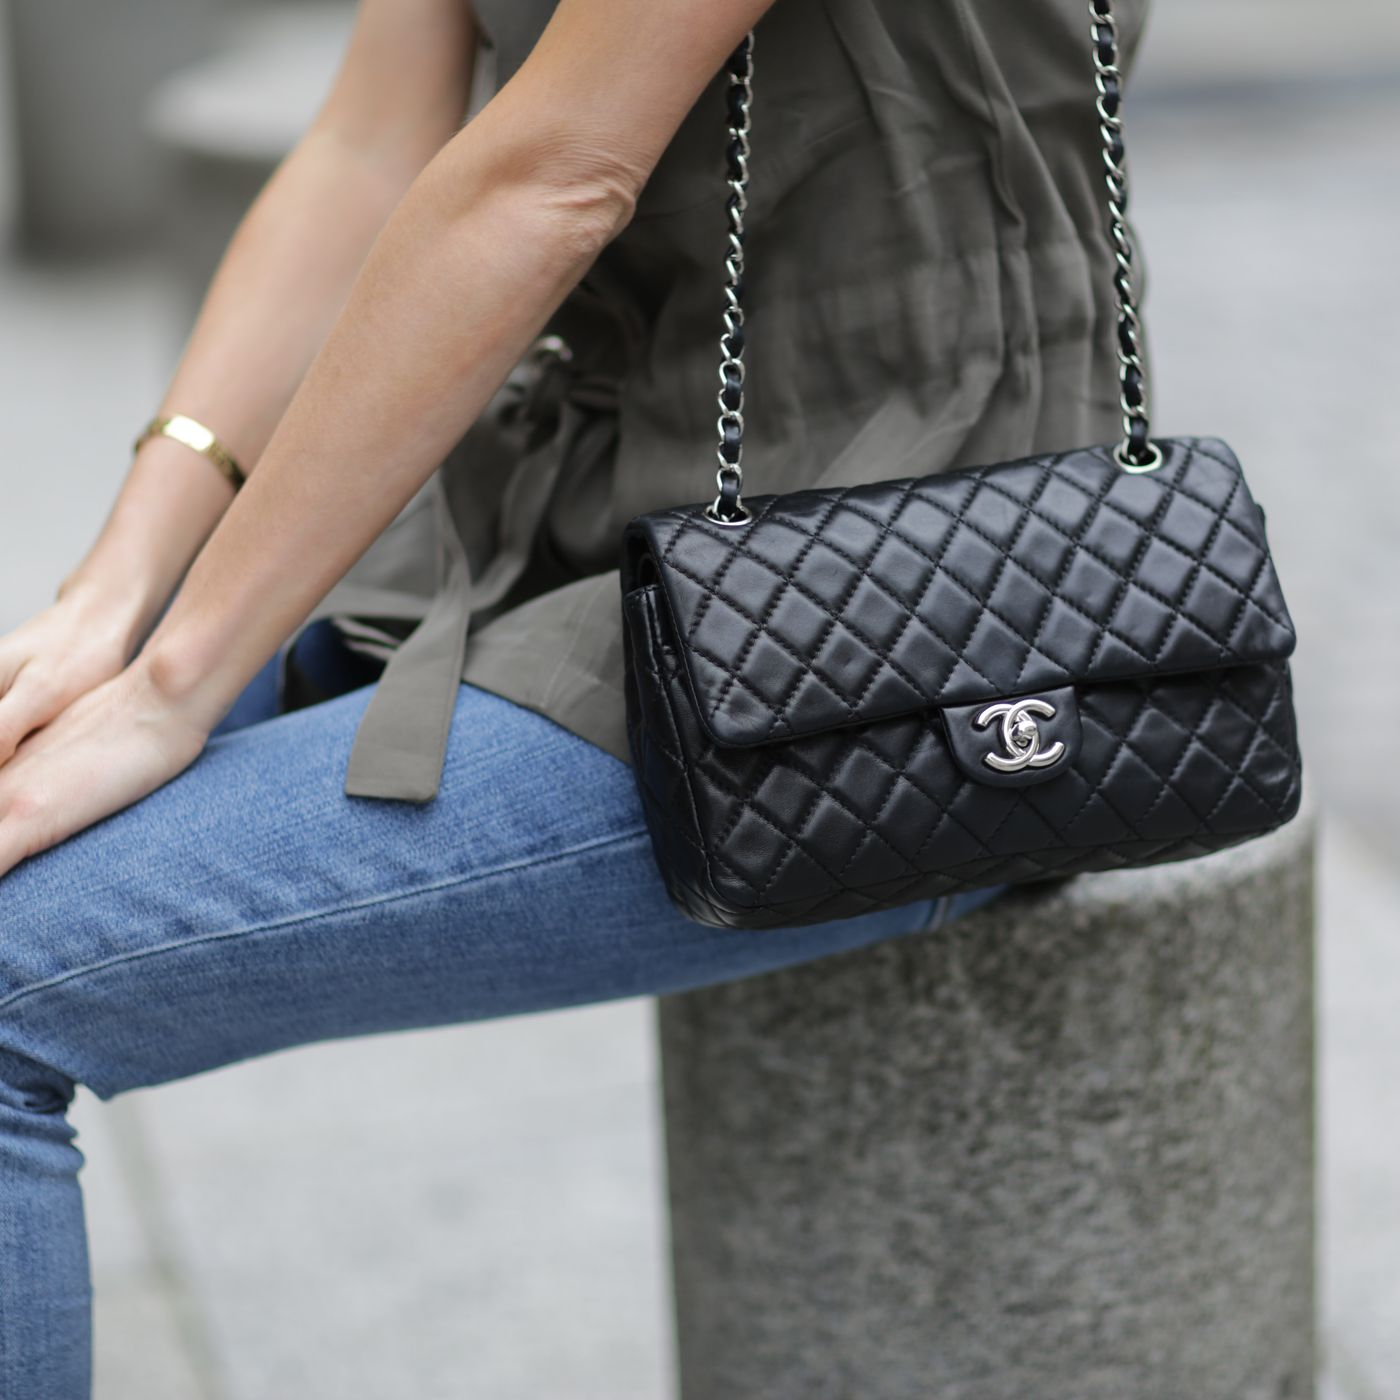 8ca73a5feced01 Chanel's Classic Flap Bag Increased In Value Over 70% in Past 6 Years -  Racked